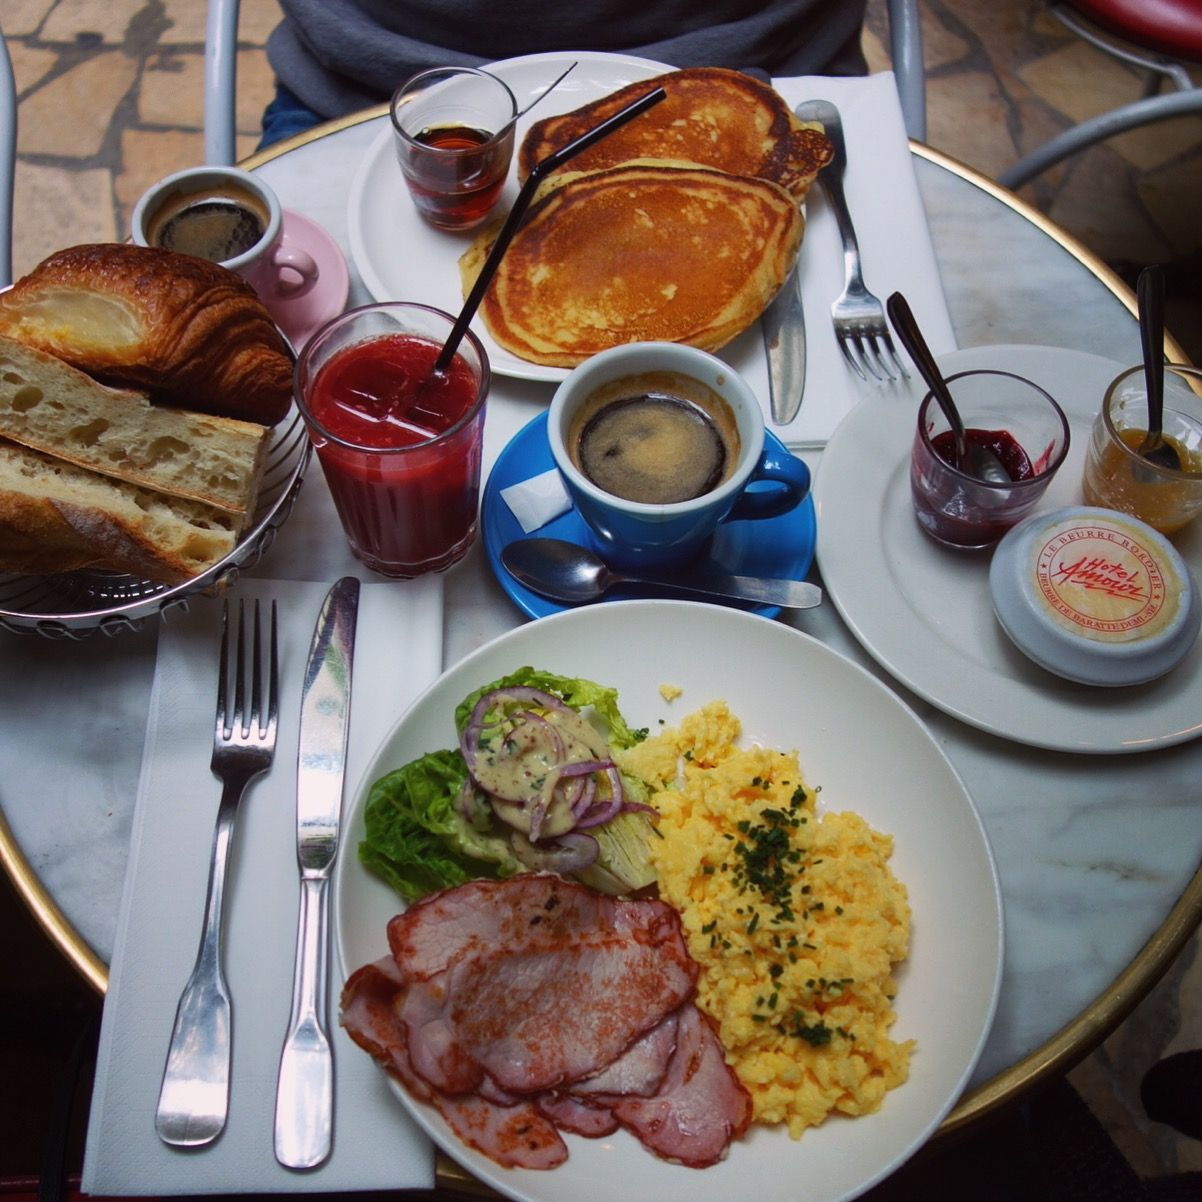 Brunch at the Hotel Amour in Paris.